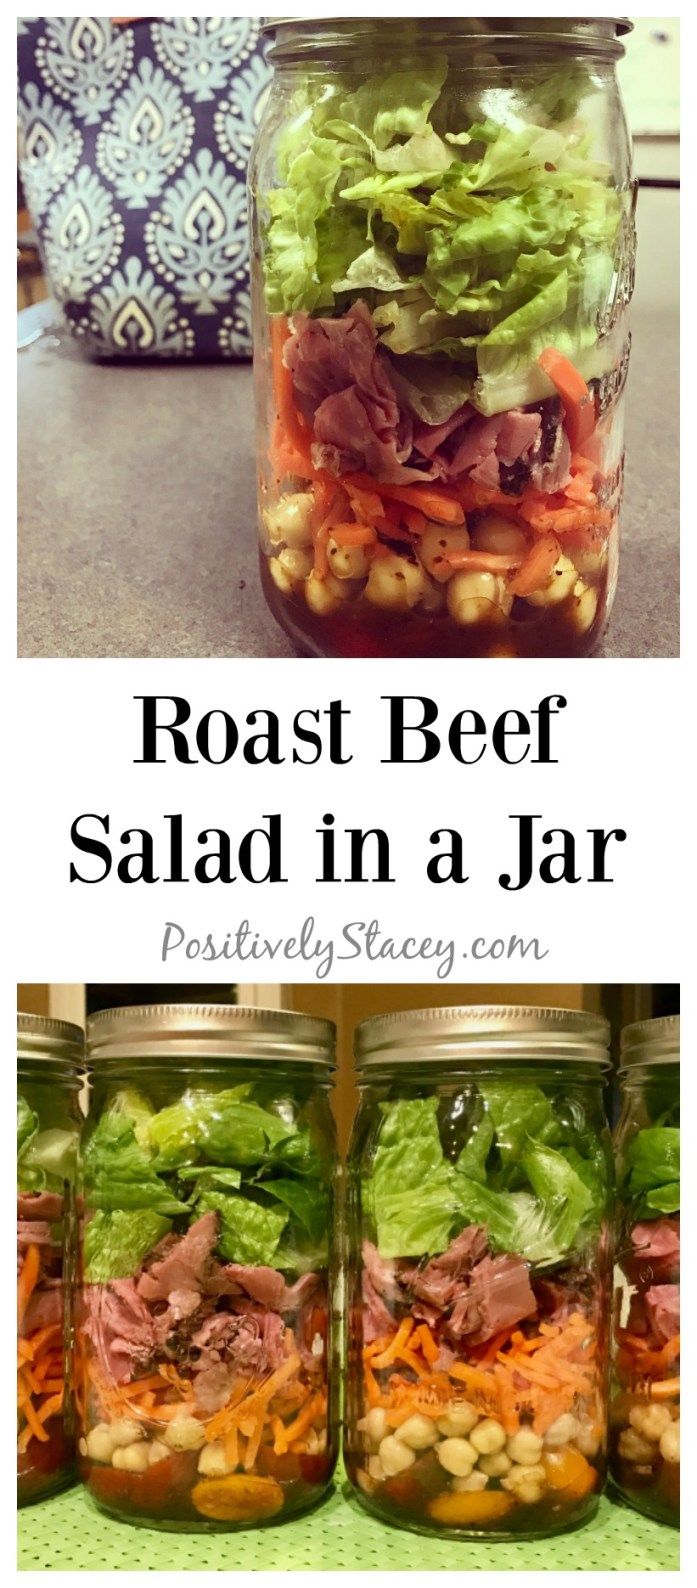 This roast beef salad in a jar is one of my favorite recipes for lunch. The heartiness of the garbanzo beans with the roast beef is perfectly delicious.